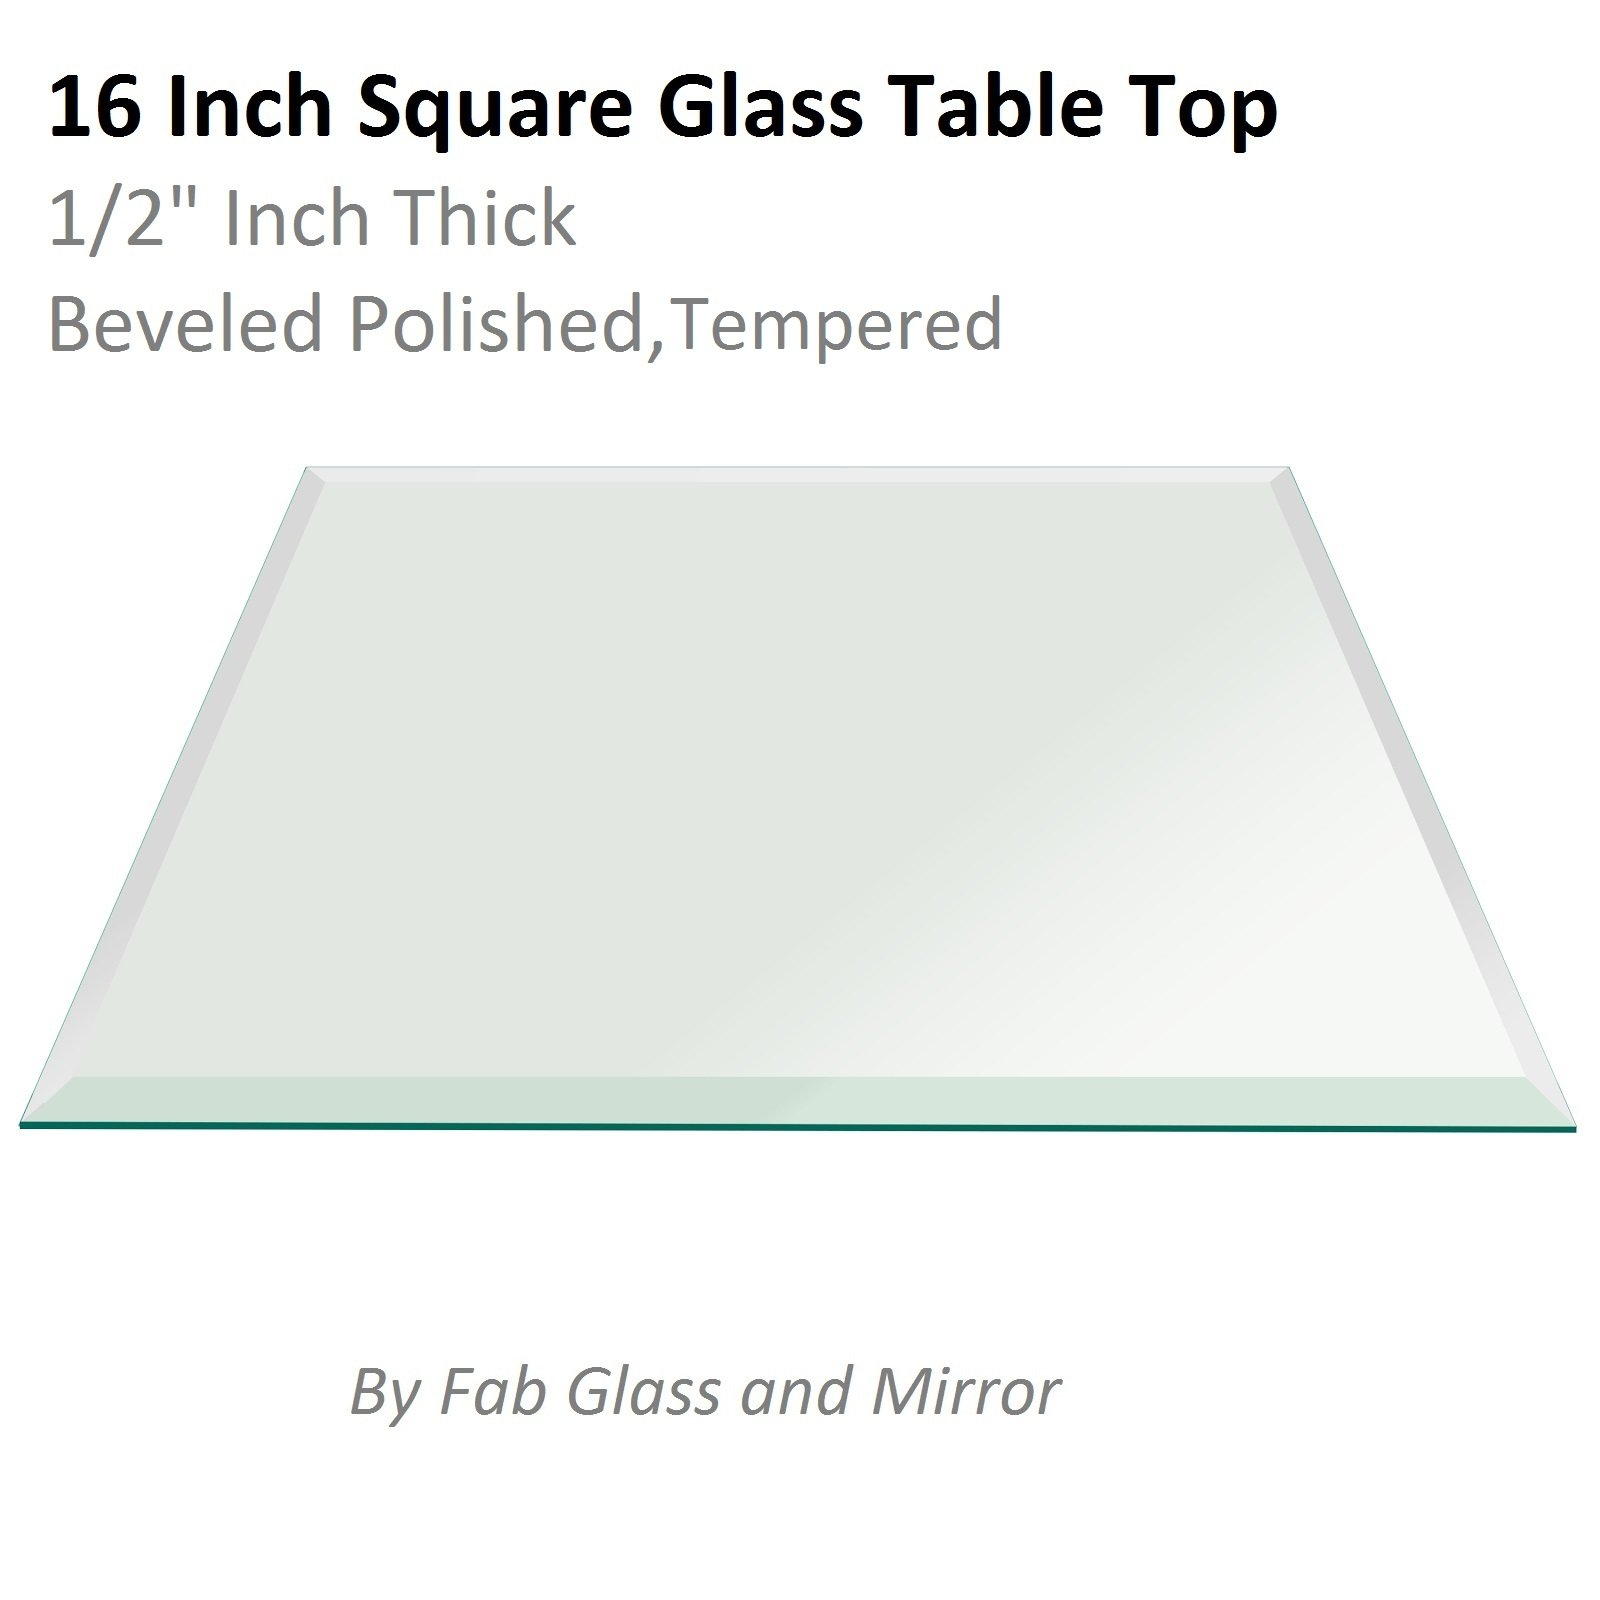 Fab Glass and Mirror 1/2'' Thick Bevel Polish Tempered Radius Corners Square Glass Table Top, 16''